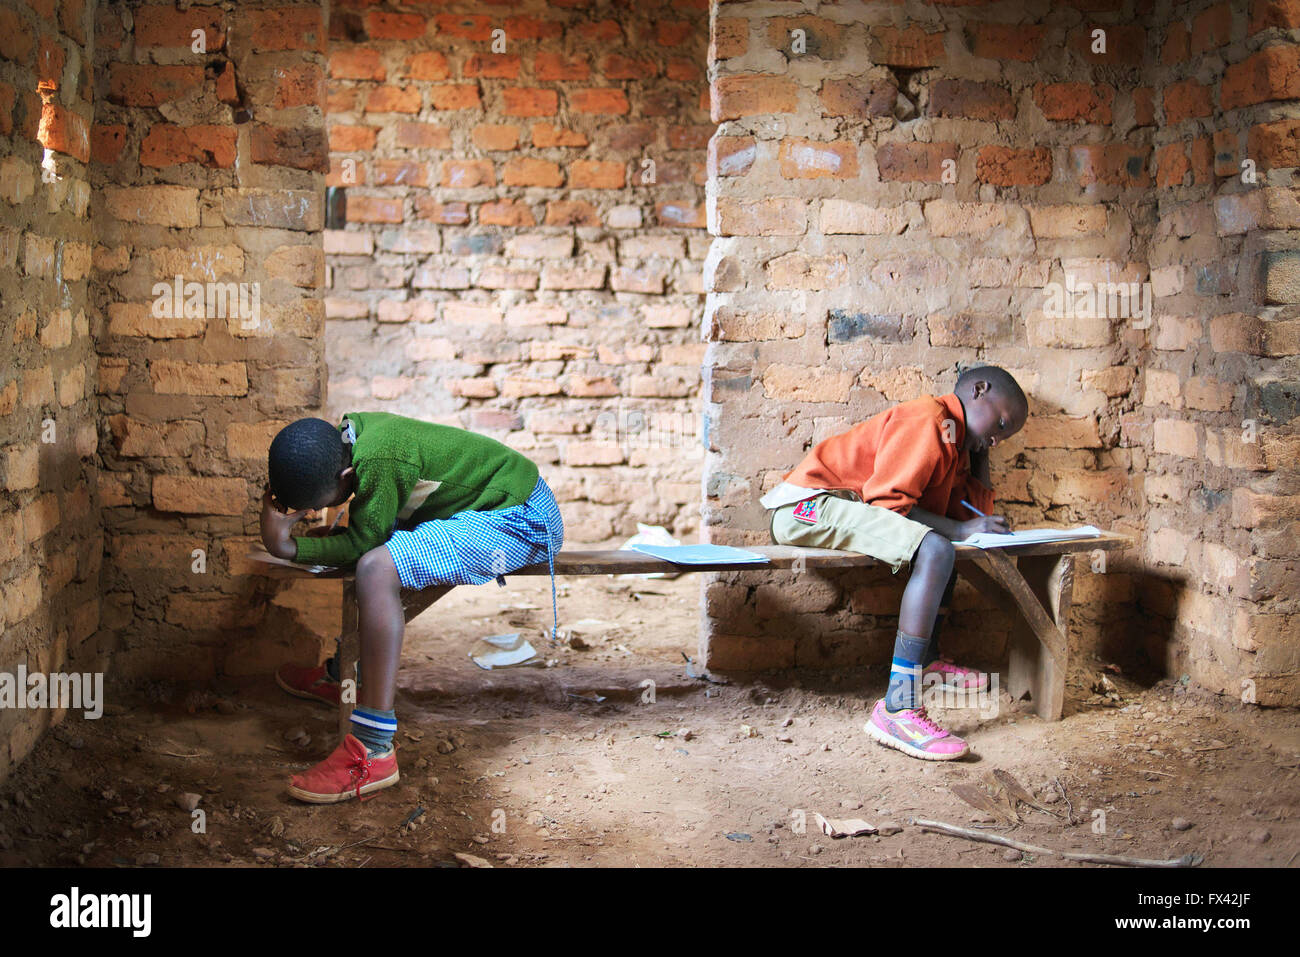 Two brightly dressed school children take exams in a rural school in Uganda, East Africa Stock Photo